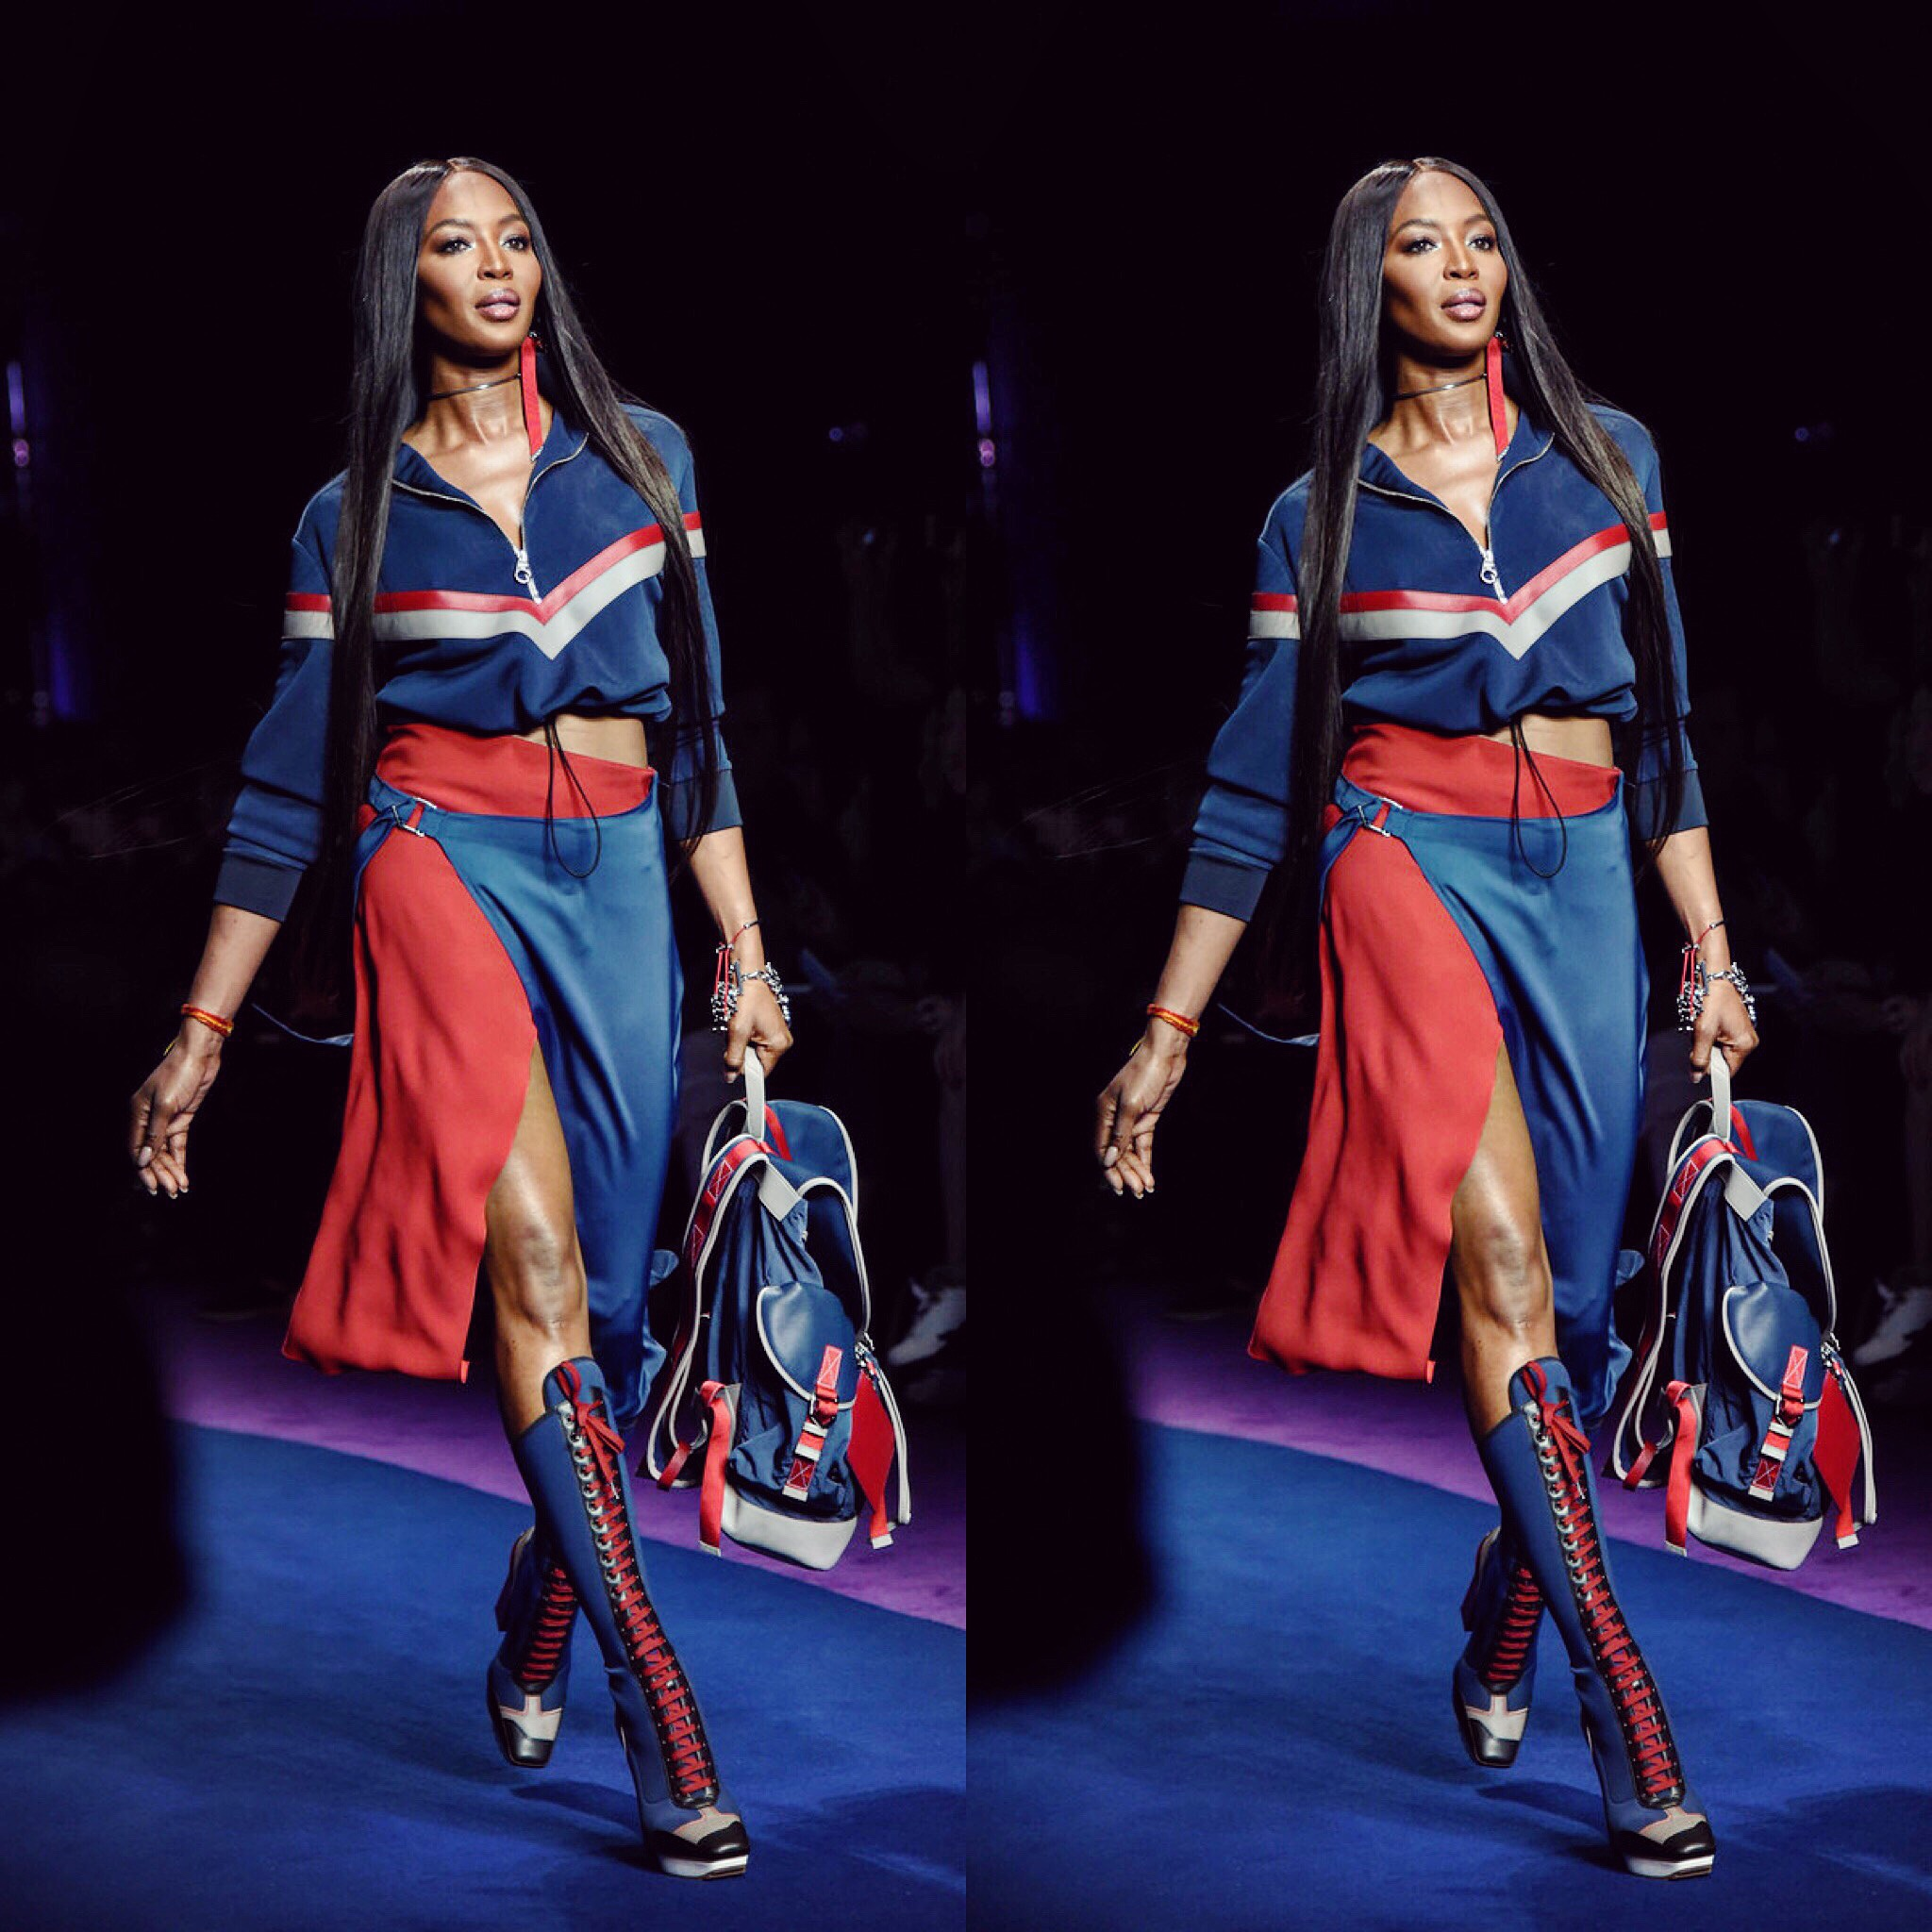 Queen Naomi slaying everyone's existence including mine!!! How exciting to appear for the same brand & step on the same runway as her HIGHNESS/arguably the greatest model of all time! LOVE YOU NAOMI! (Photo credit: Gabriela Di Muro) 😍😘🙏🏼👸🏾